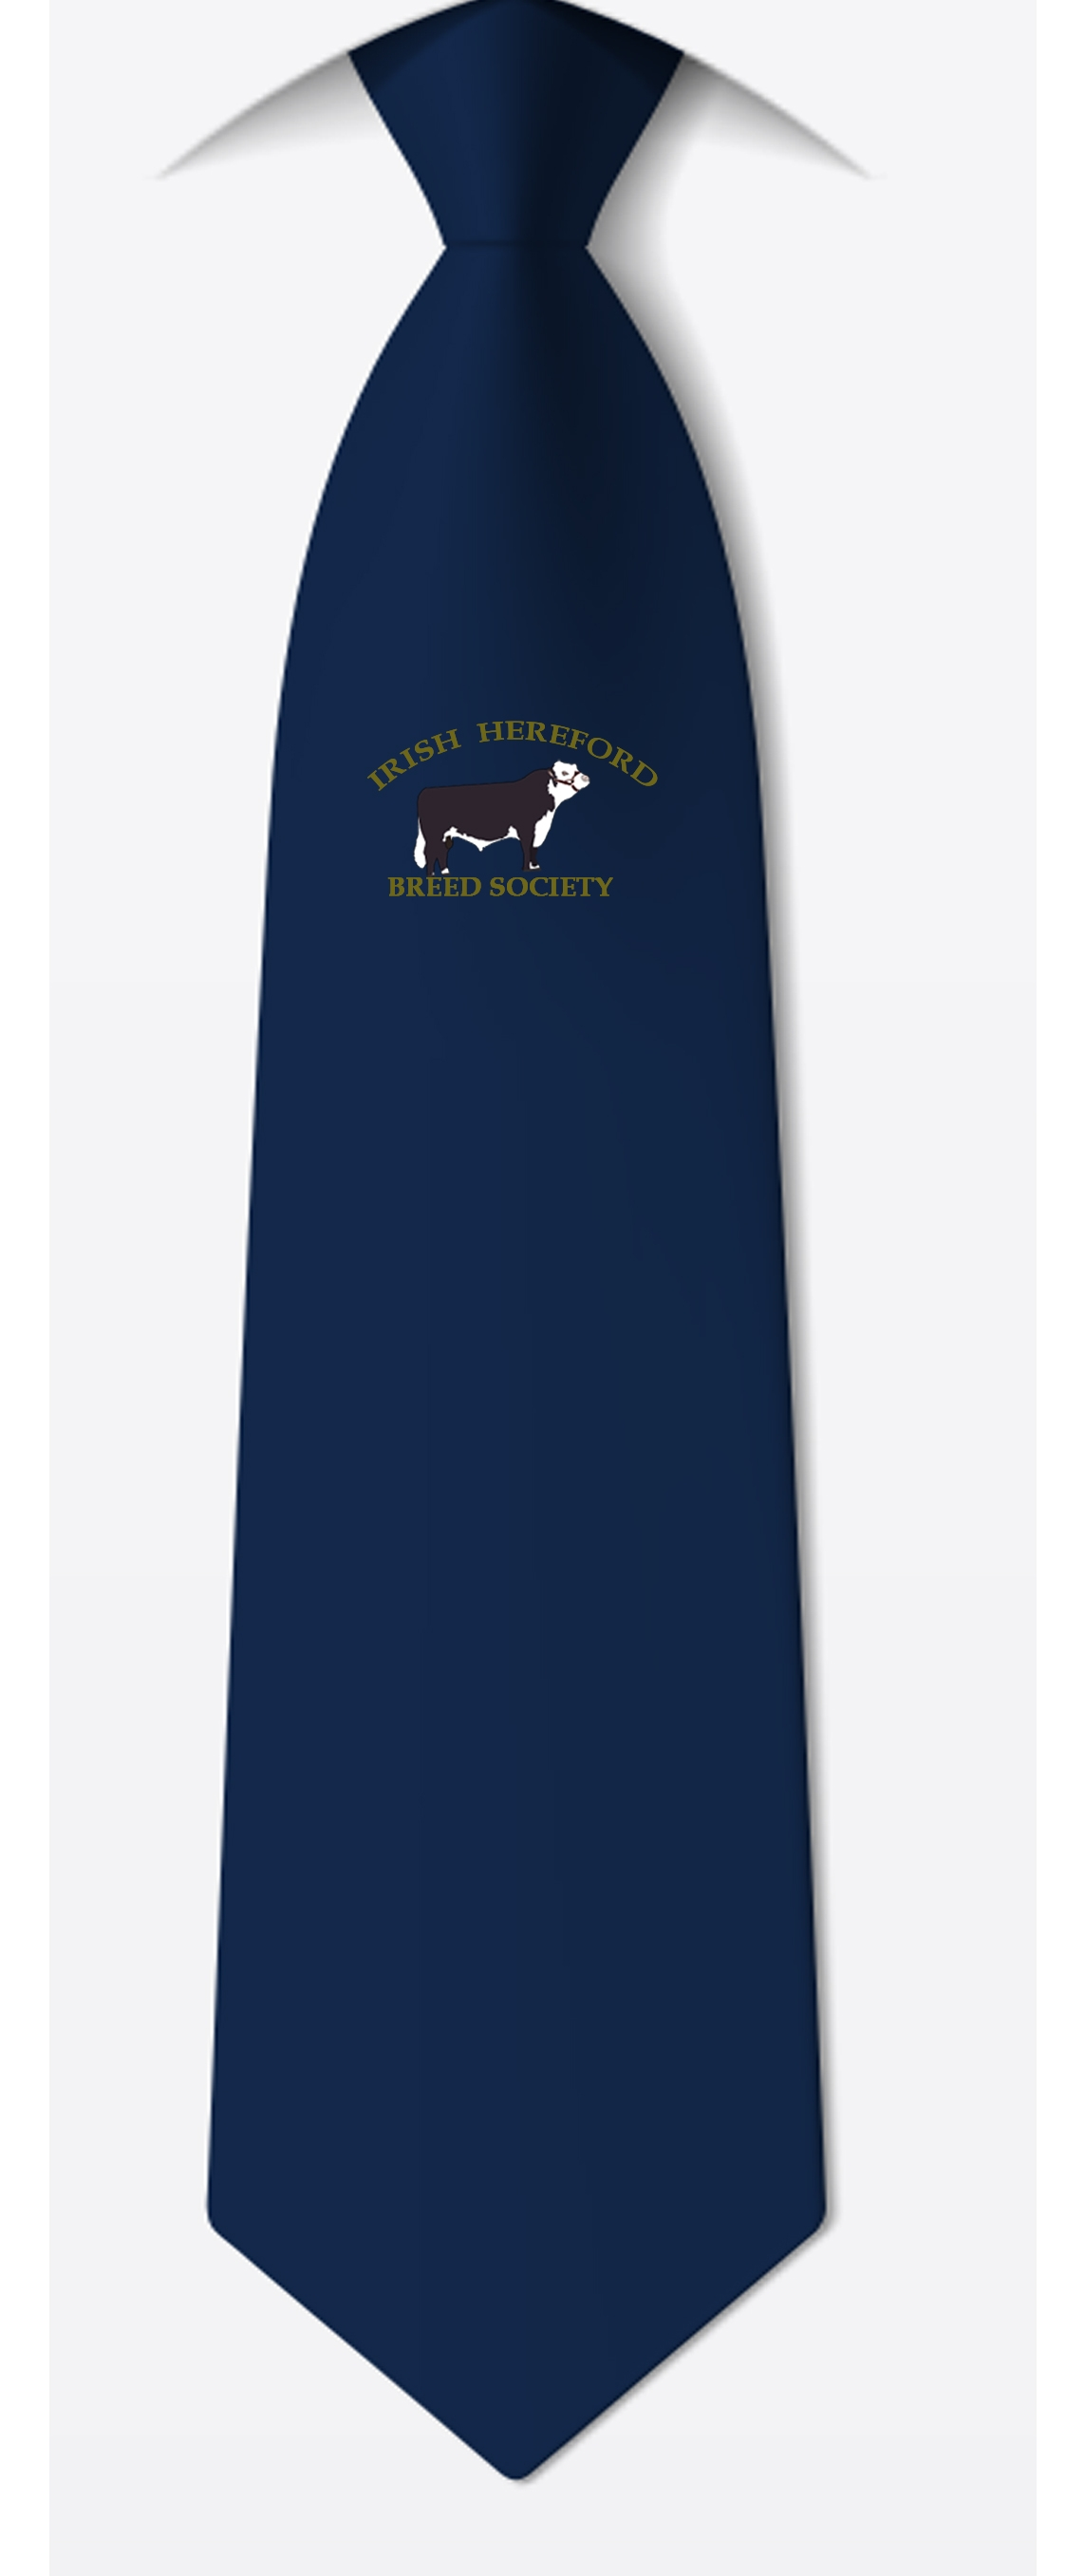 Irish Hereford Tie